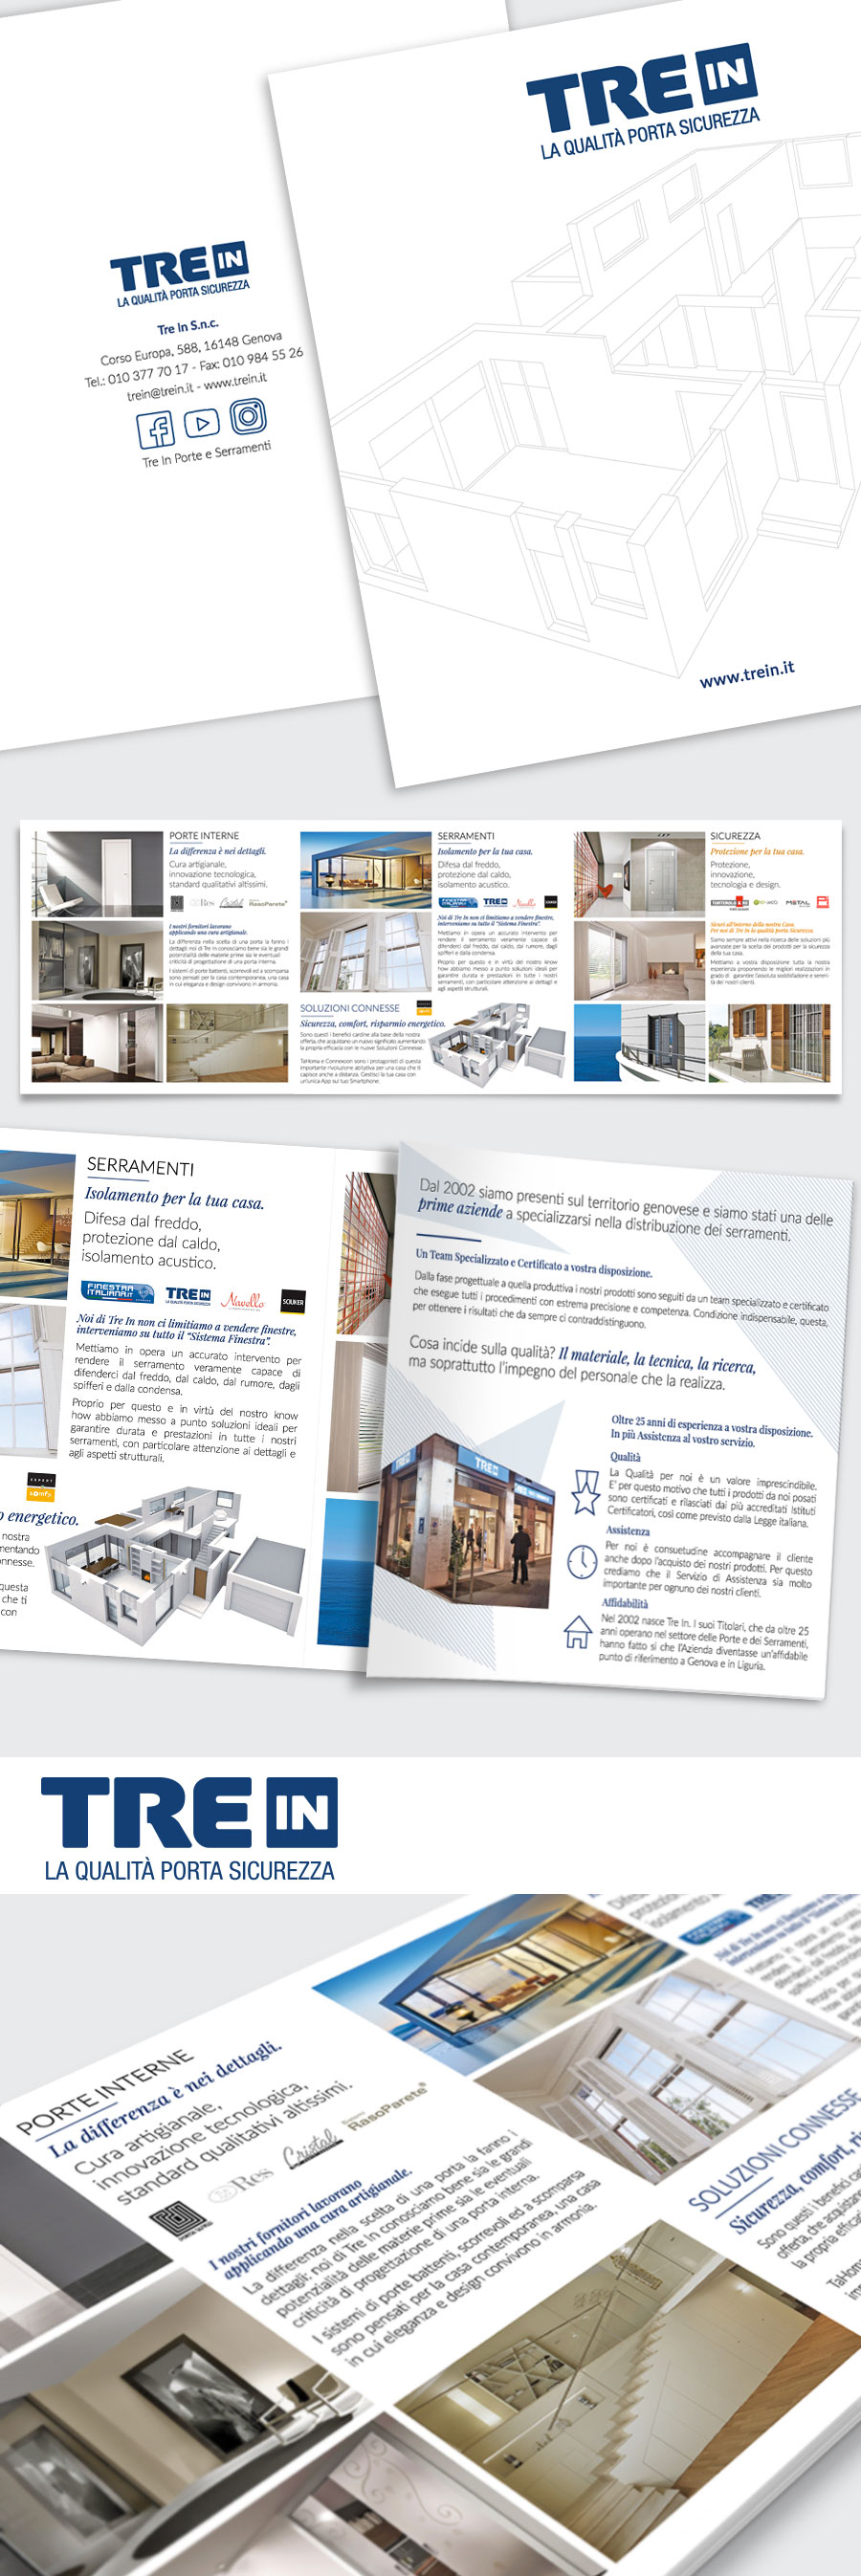 belink-design-genova-brochure-tre-in